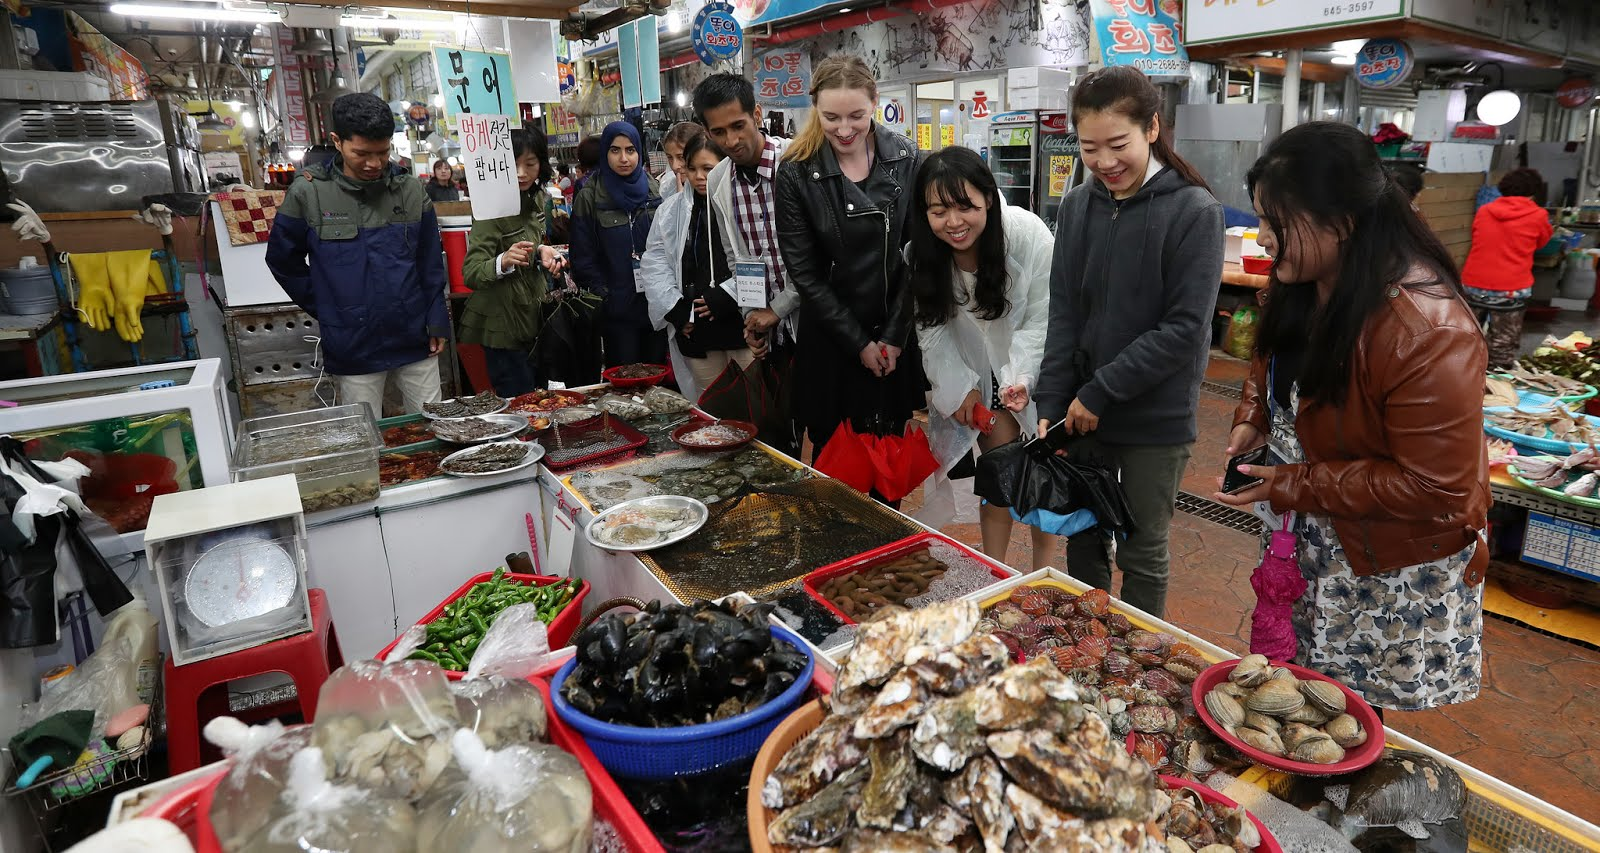 A visit to Tongyeong's Jungang Tradition Market famous for its fresh catch seafood.